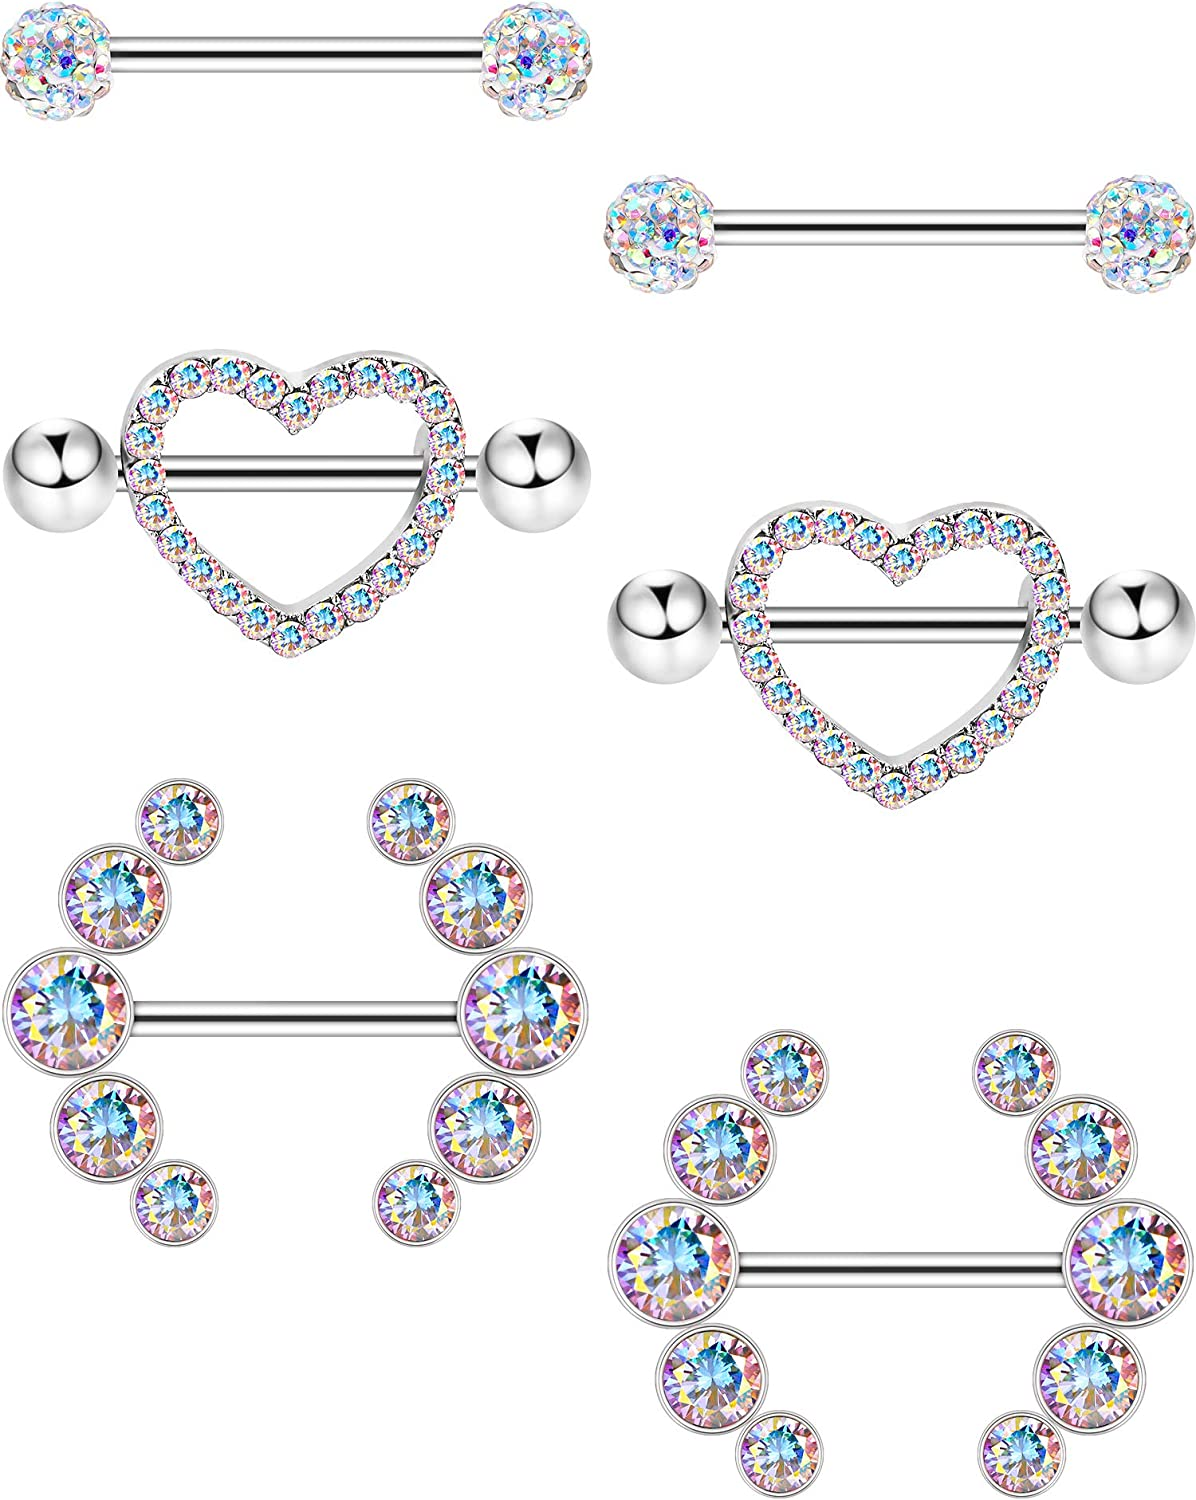 1 Barbell TURQUOISE Natural HOWLITE Barbell Industrial Scaffold Tongue Nipple Rose Gold Yellow Gold 316L Surgical Steel 14g 6mm BallEnds